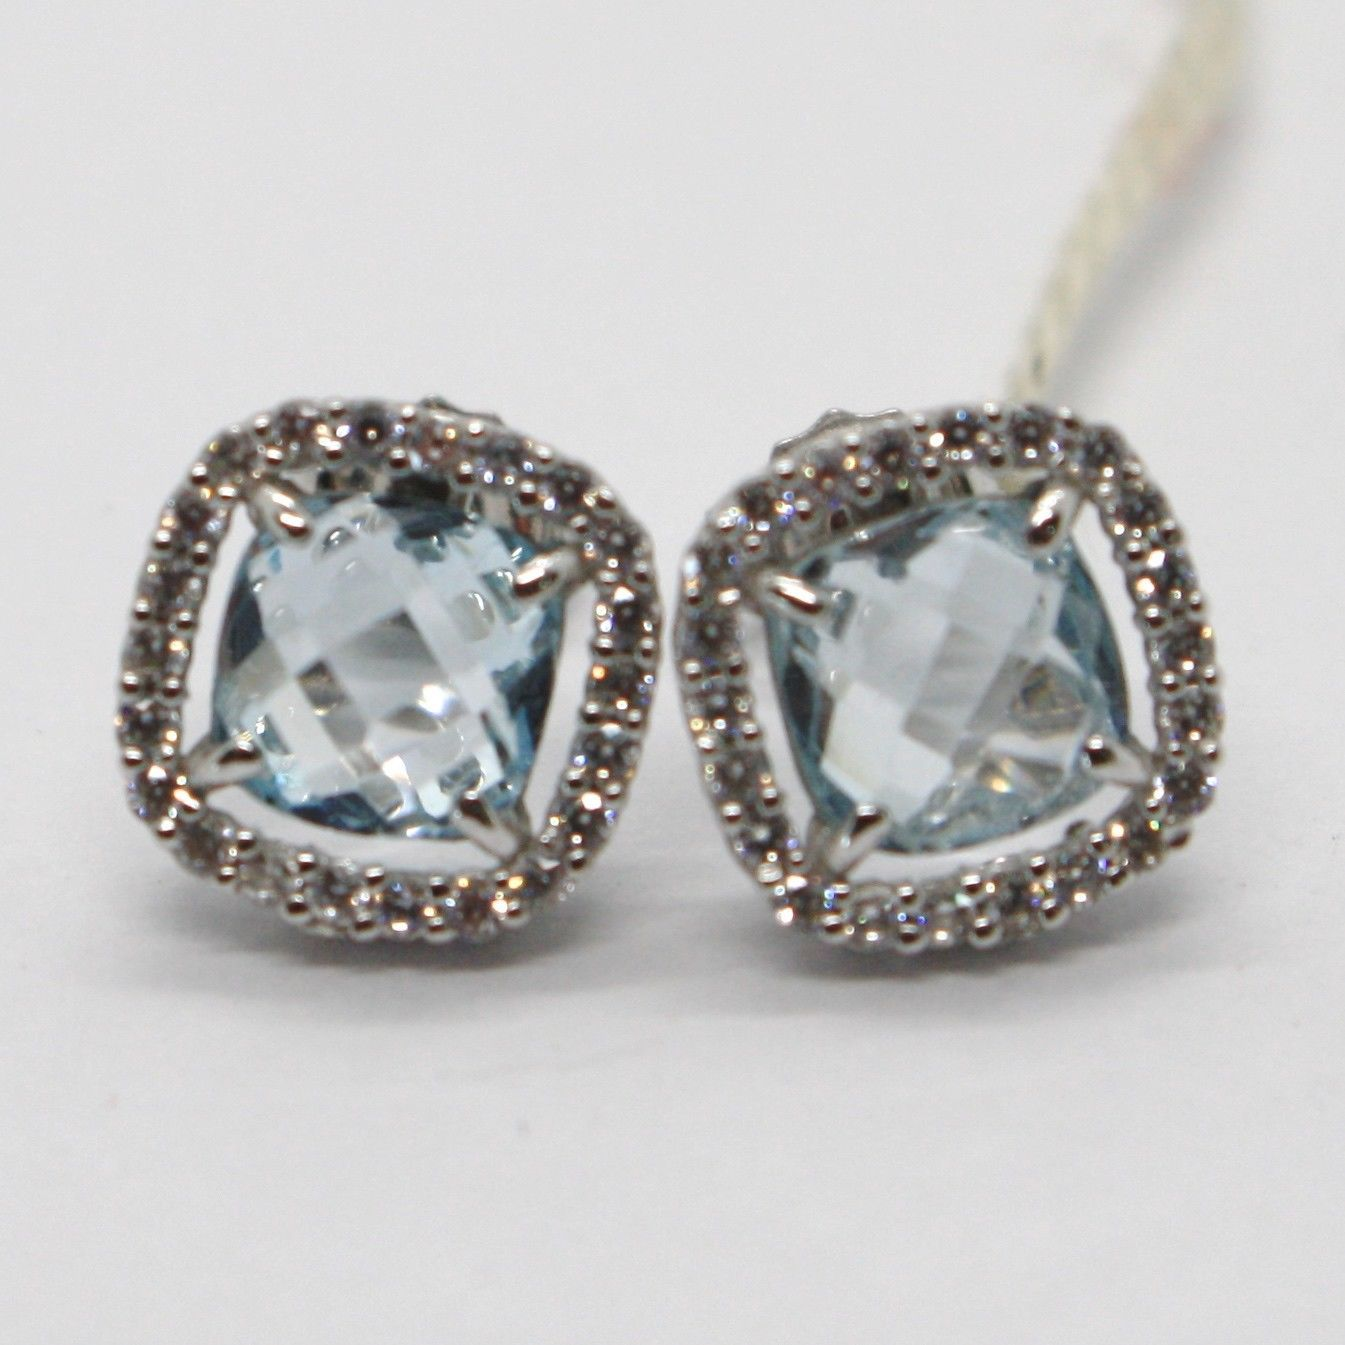 18K WHITE GOLD EARRINGS CUSHION SQUARE BLUE TOPAZ, ZIRCONIA FRAME, MADE IN ITALY